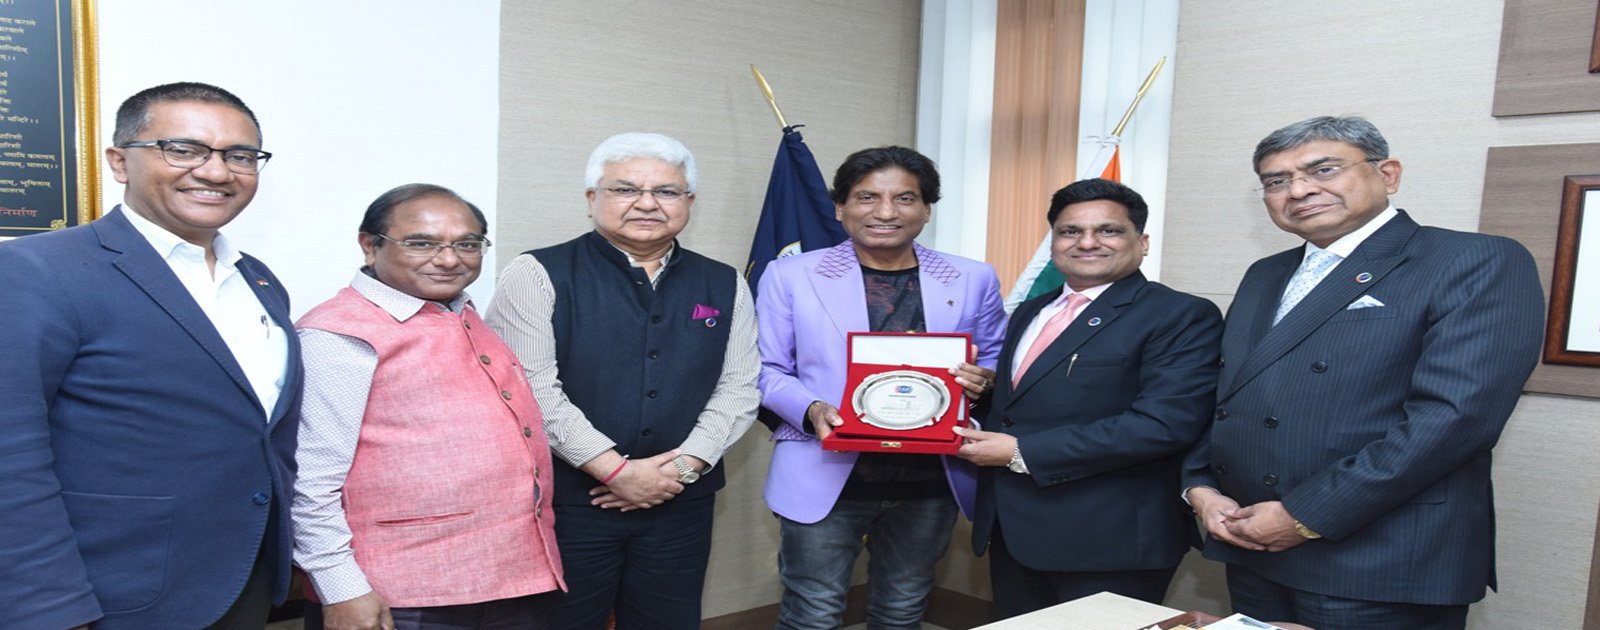 Meeting with Mr. Raju Srivastava, Renowned Stand-up Comedian & Bollywood Actor